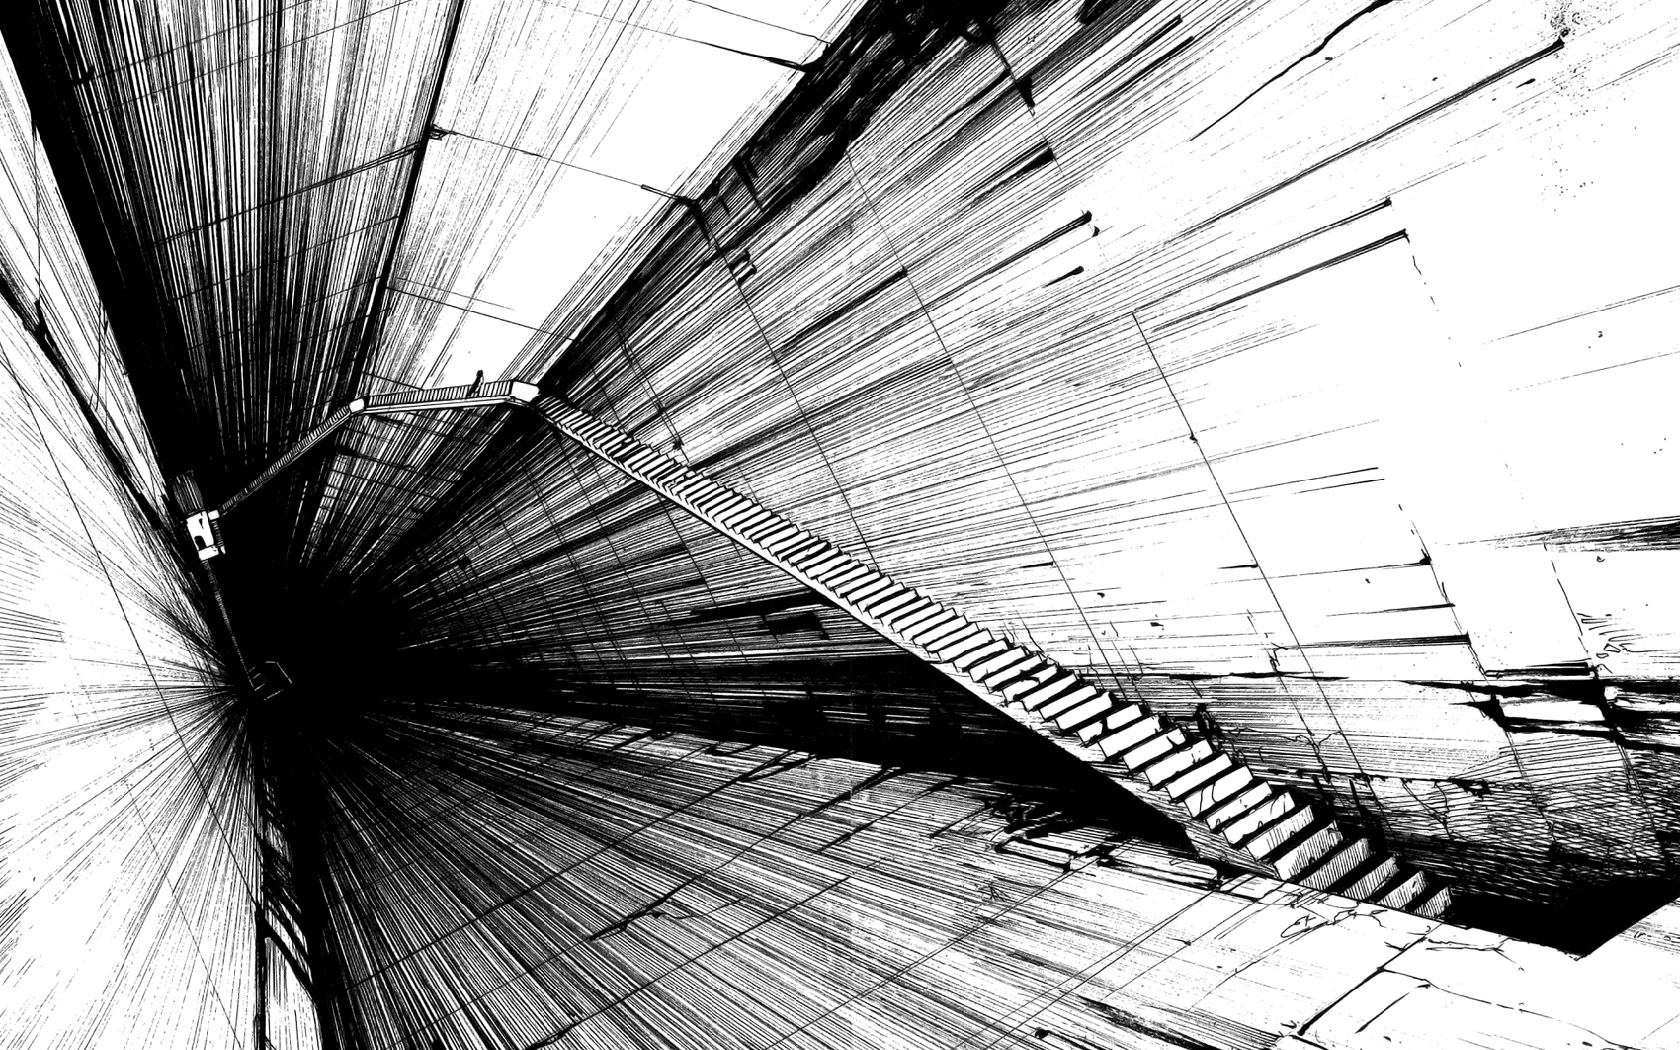 1680 x 1050 Wallpapers, Wallpaper, 392-abstract-black-white.jpg, 889